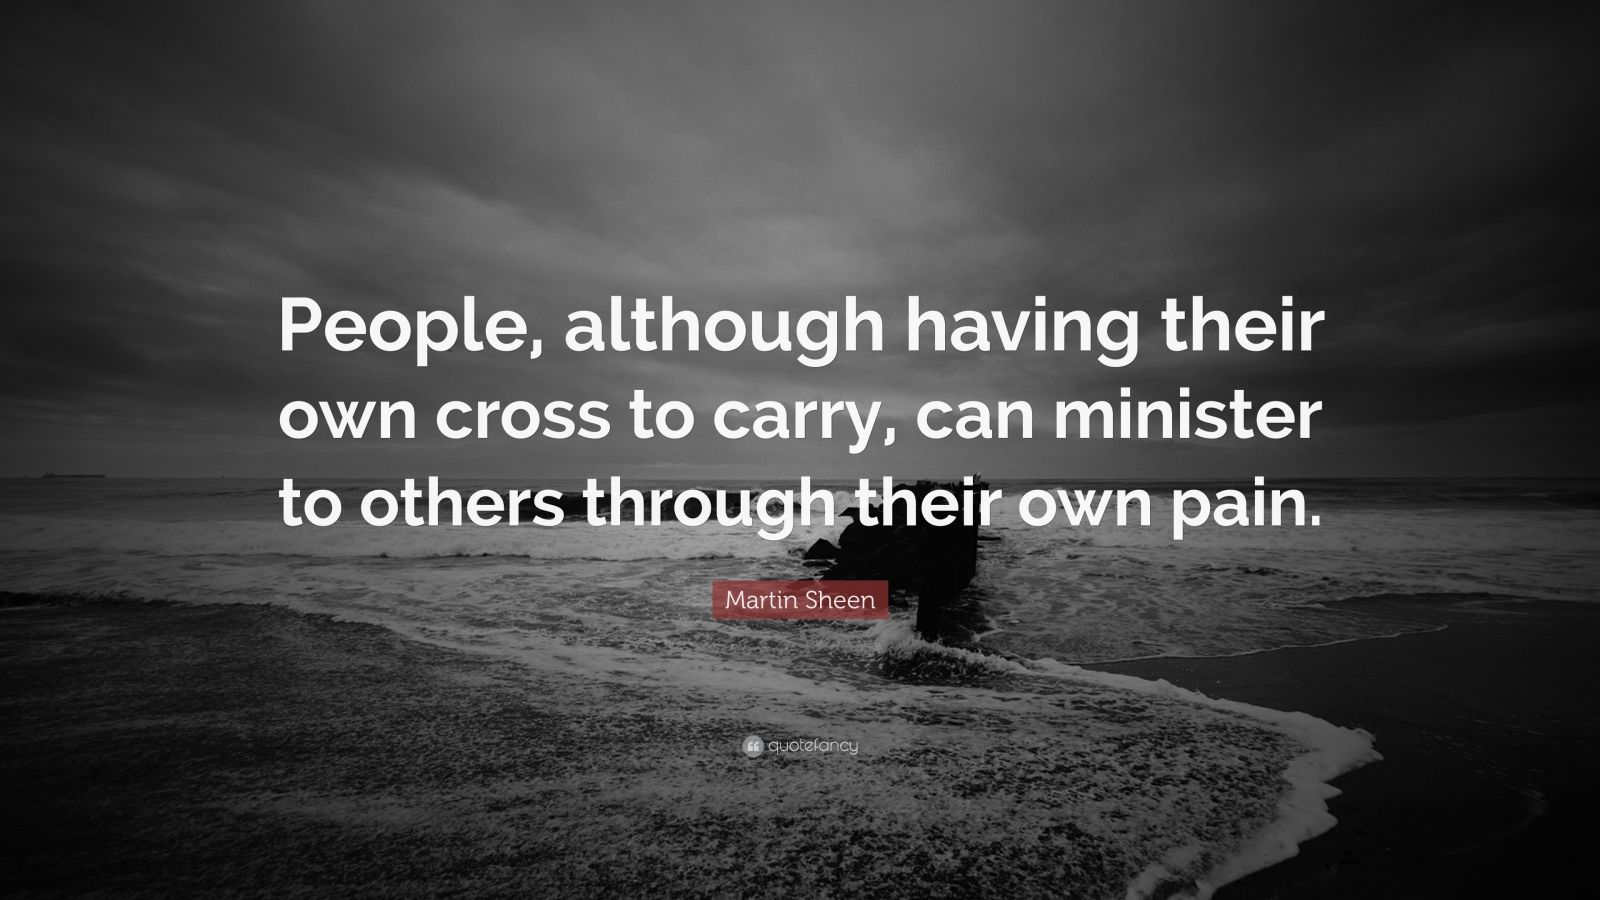 """Martin Sheen Quote: """"People, although having their own cross to carry, can minister to others through their own pain."""""""